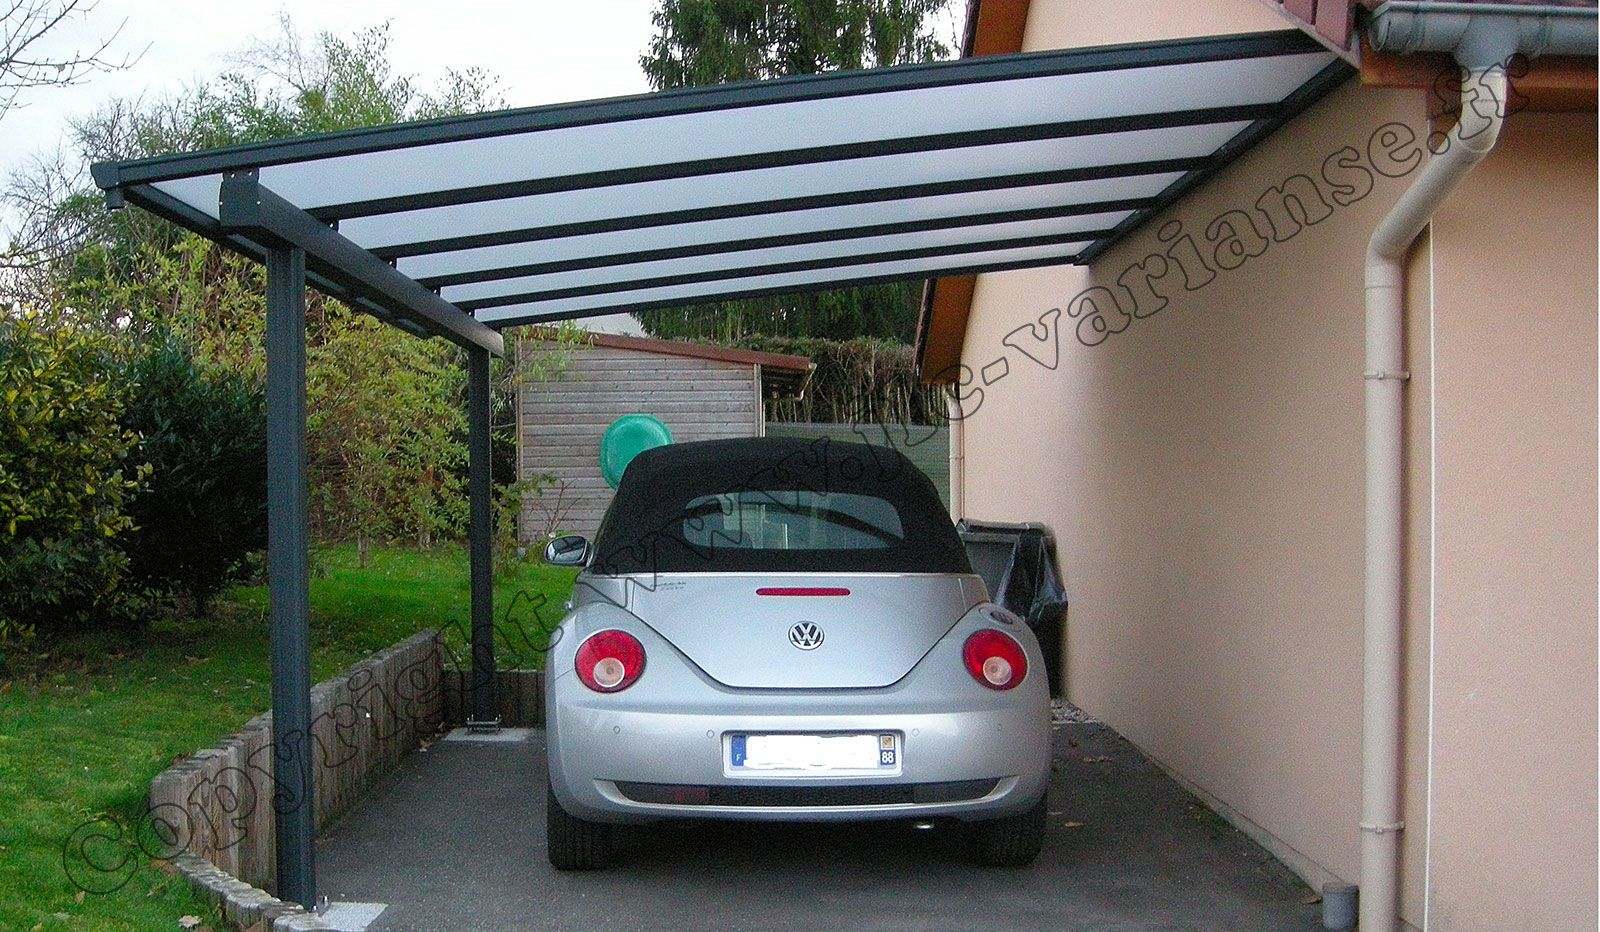 ce carport mural mod le florival adoss au mur du garage couvre ais ment 1 voiture le v hicule. Black Bedroom Furniture Sets. Home Design Ideas